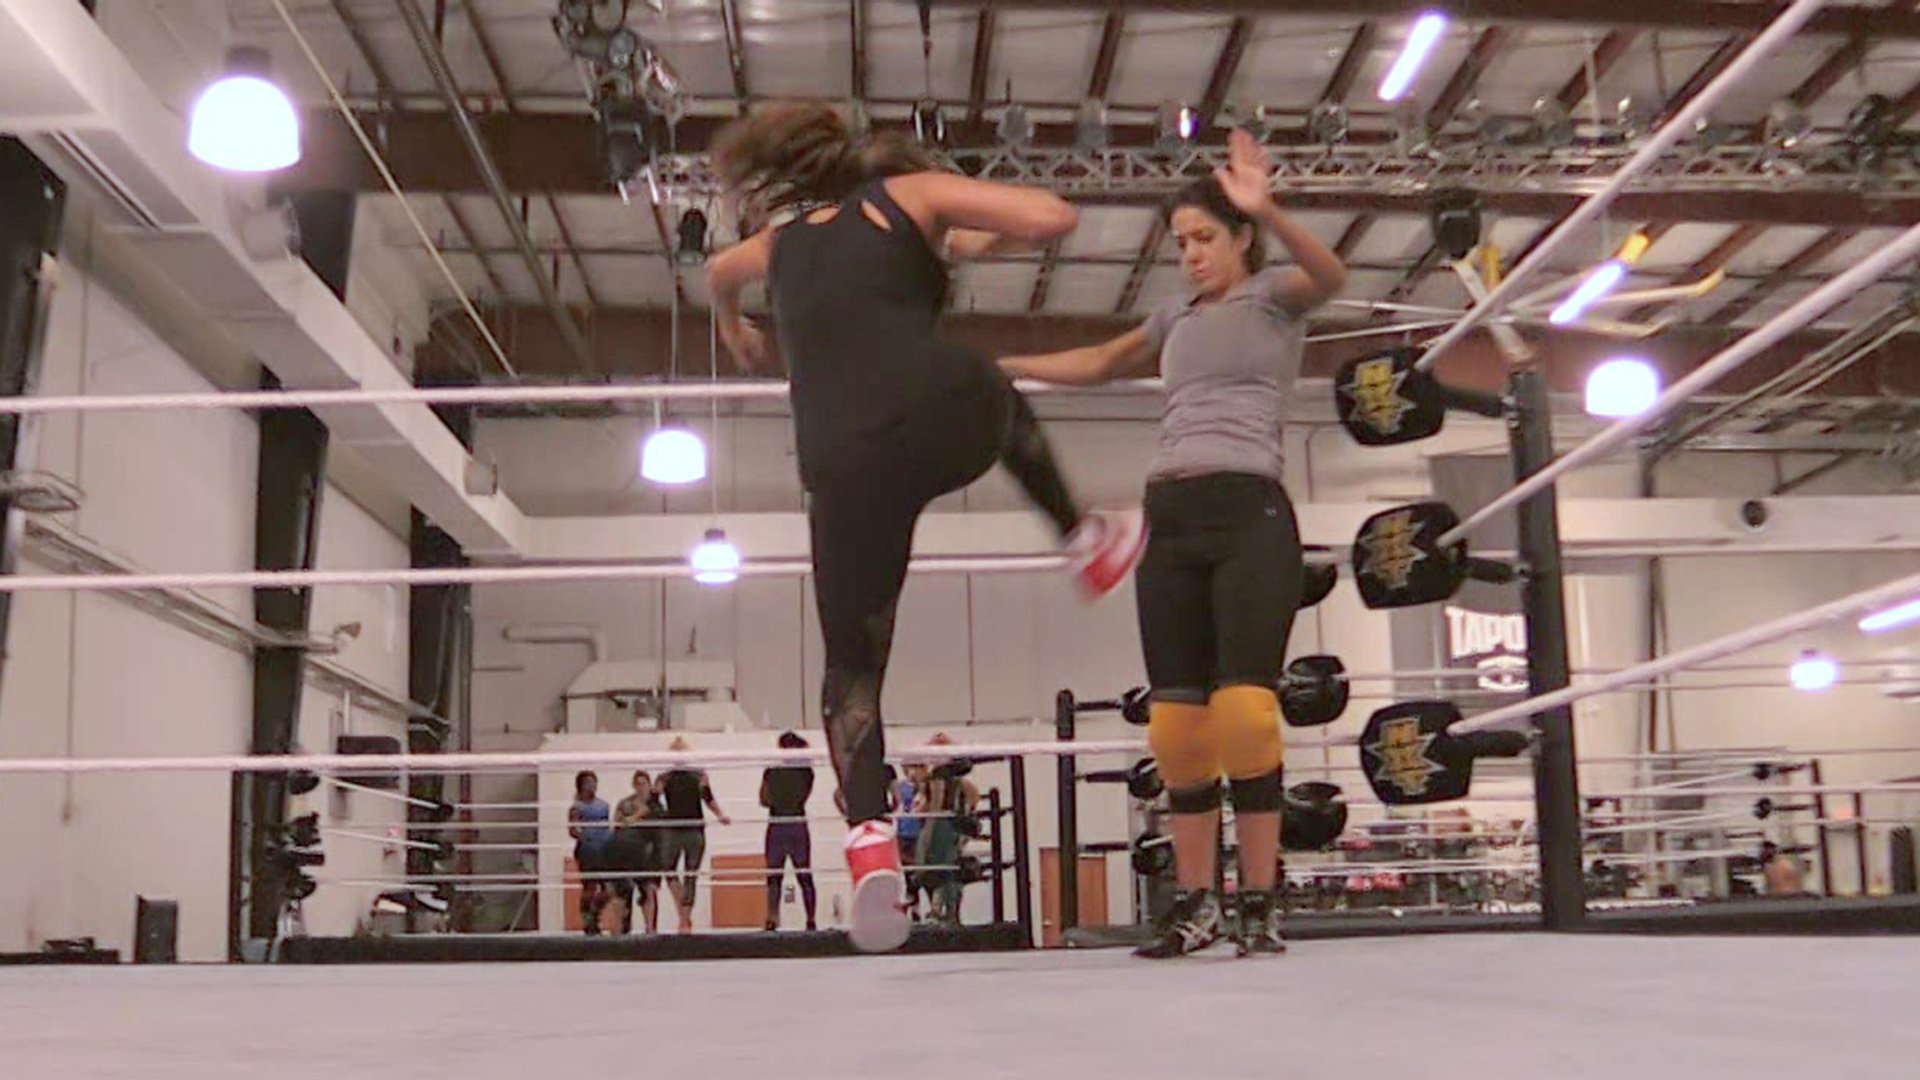 Nikki Bella and Bayley train at the WWE Performance Center, helping The Fearless One get her legs back and hopefully begin working out ideas for a new signature move.